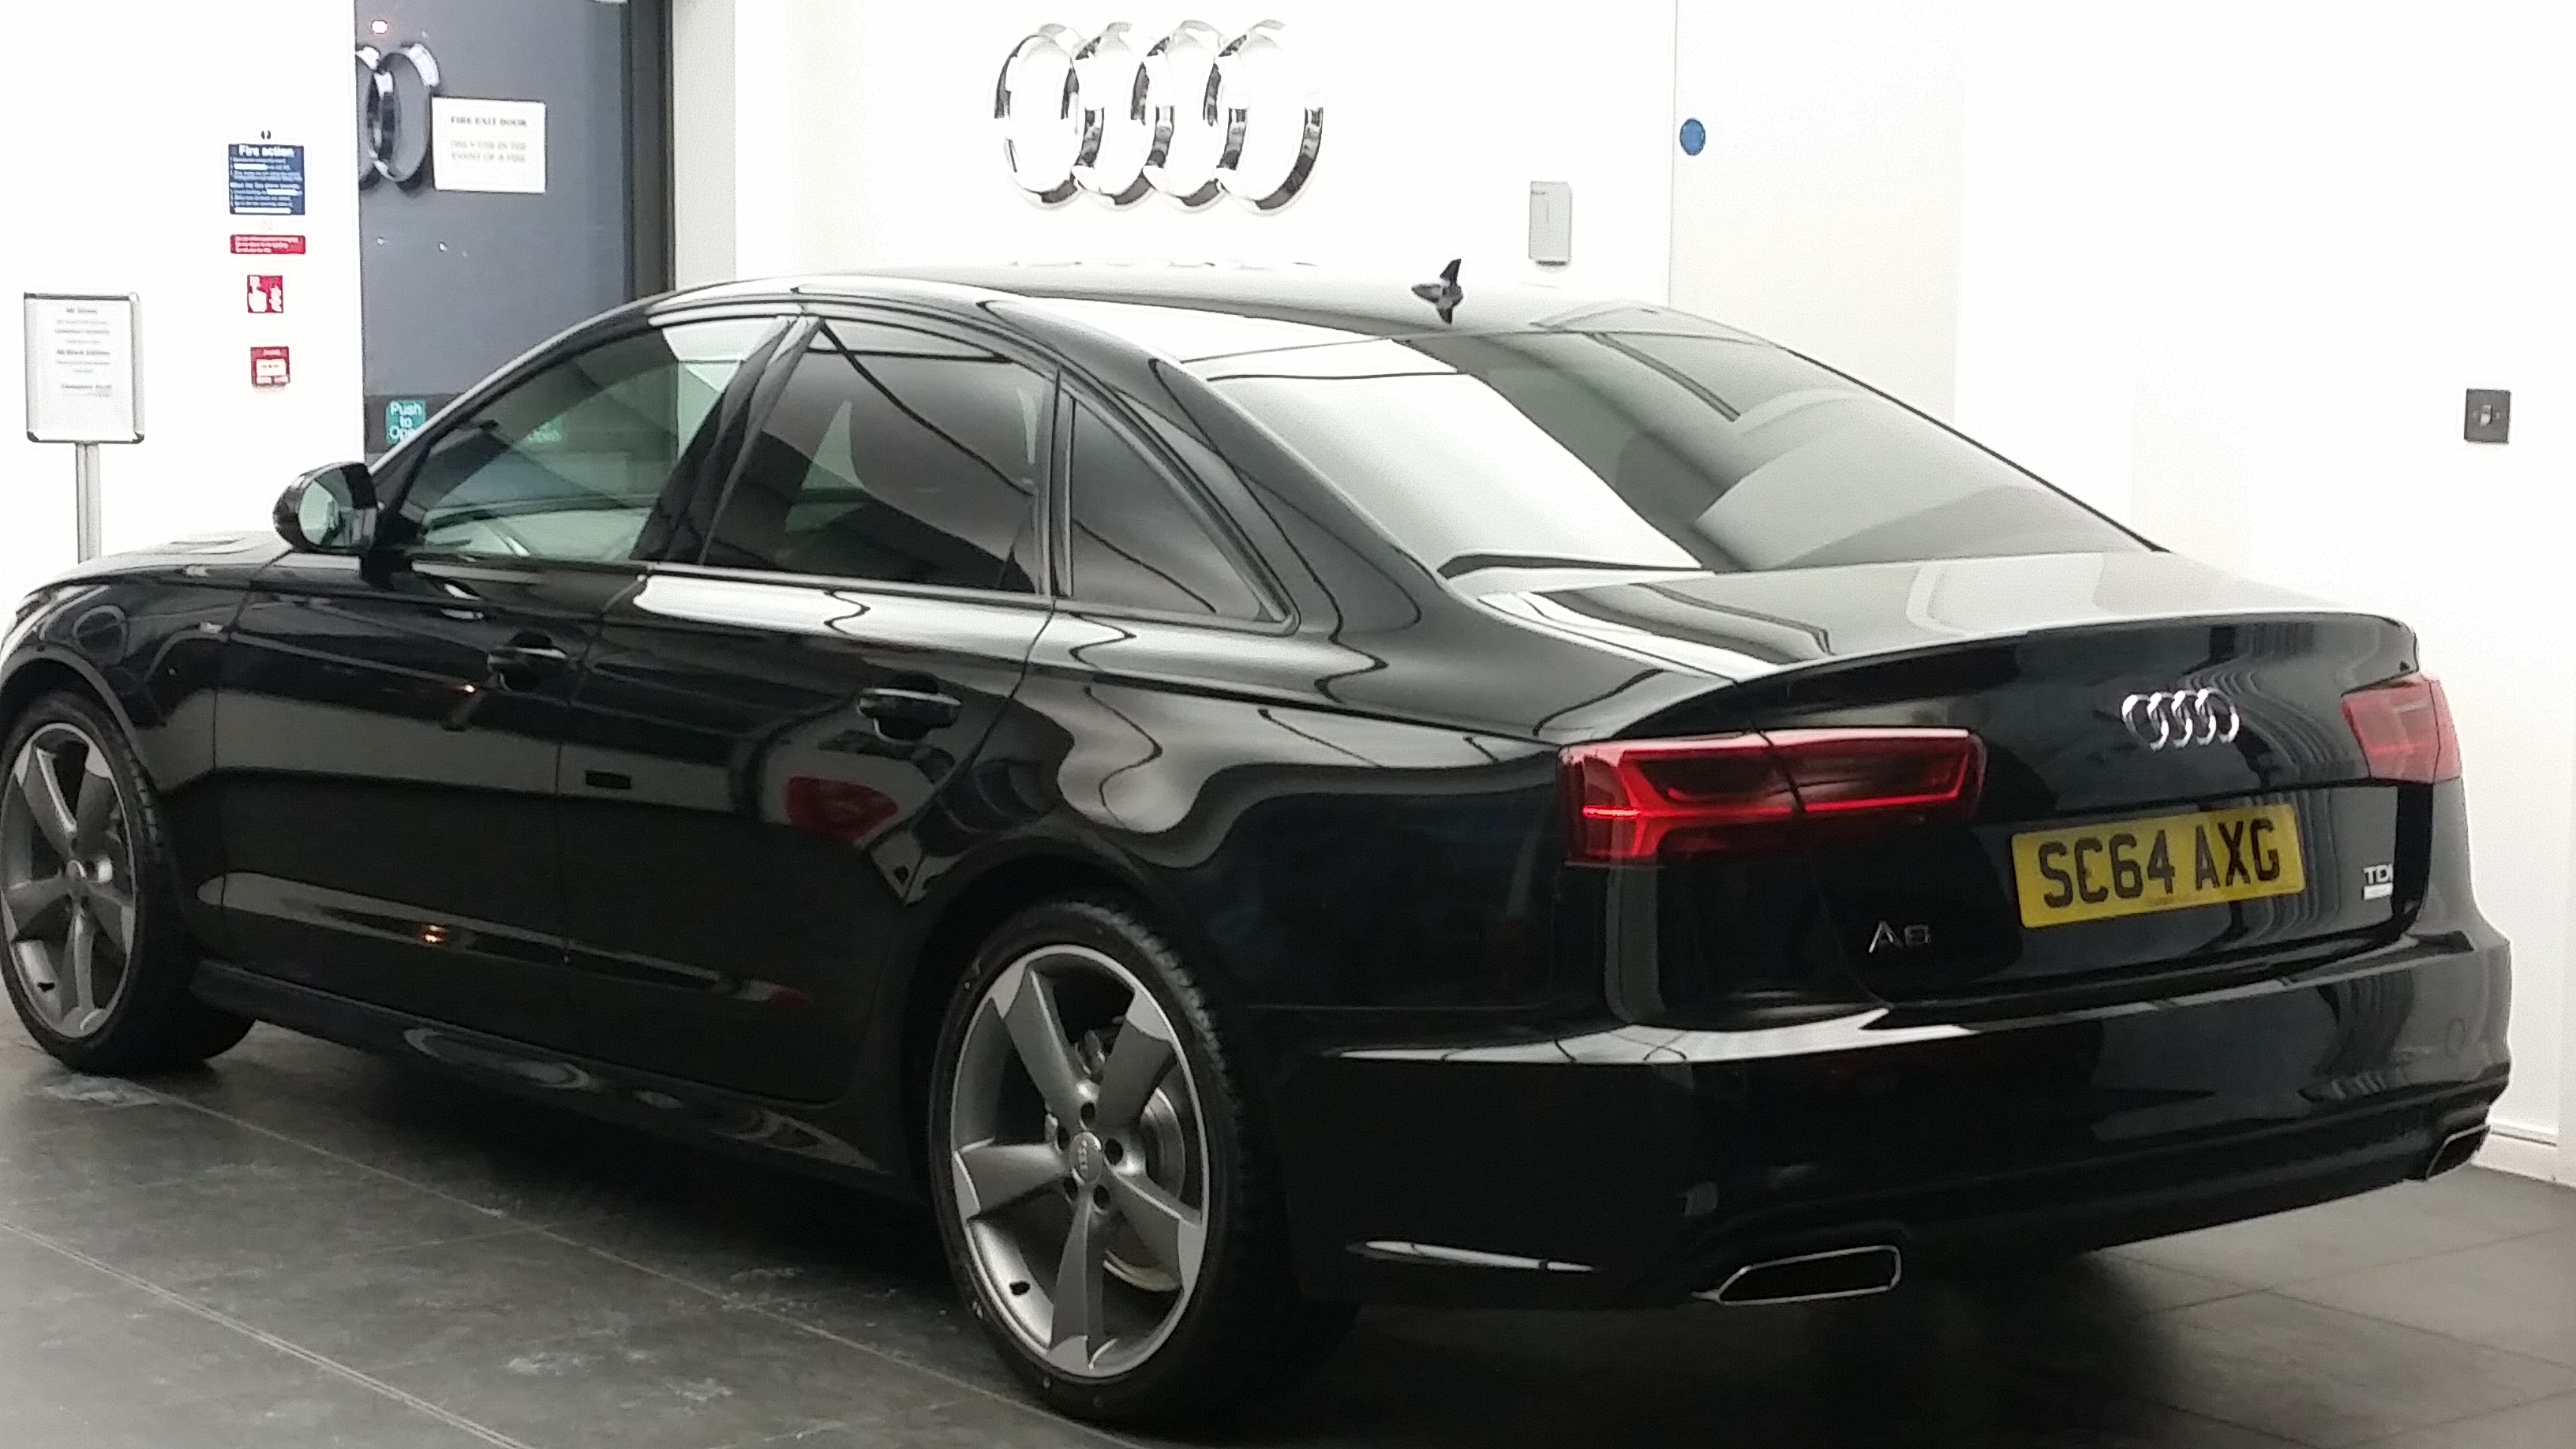 s at sportback near tfsi cars watch tronic audi for sale sussex brighton quattro cmc